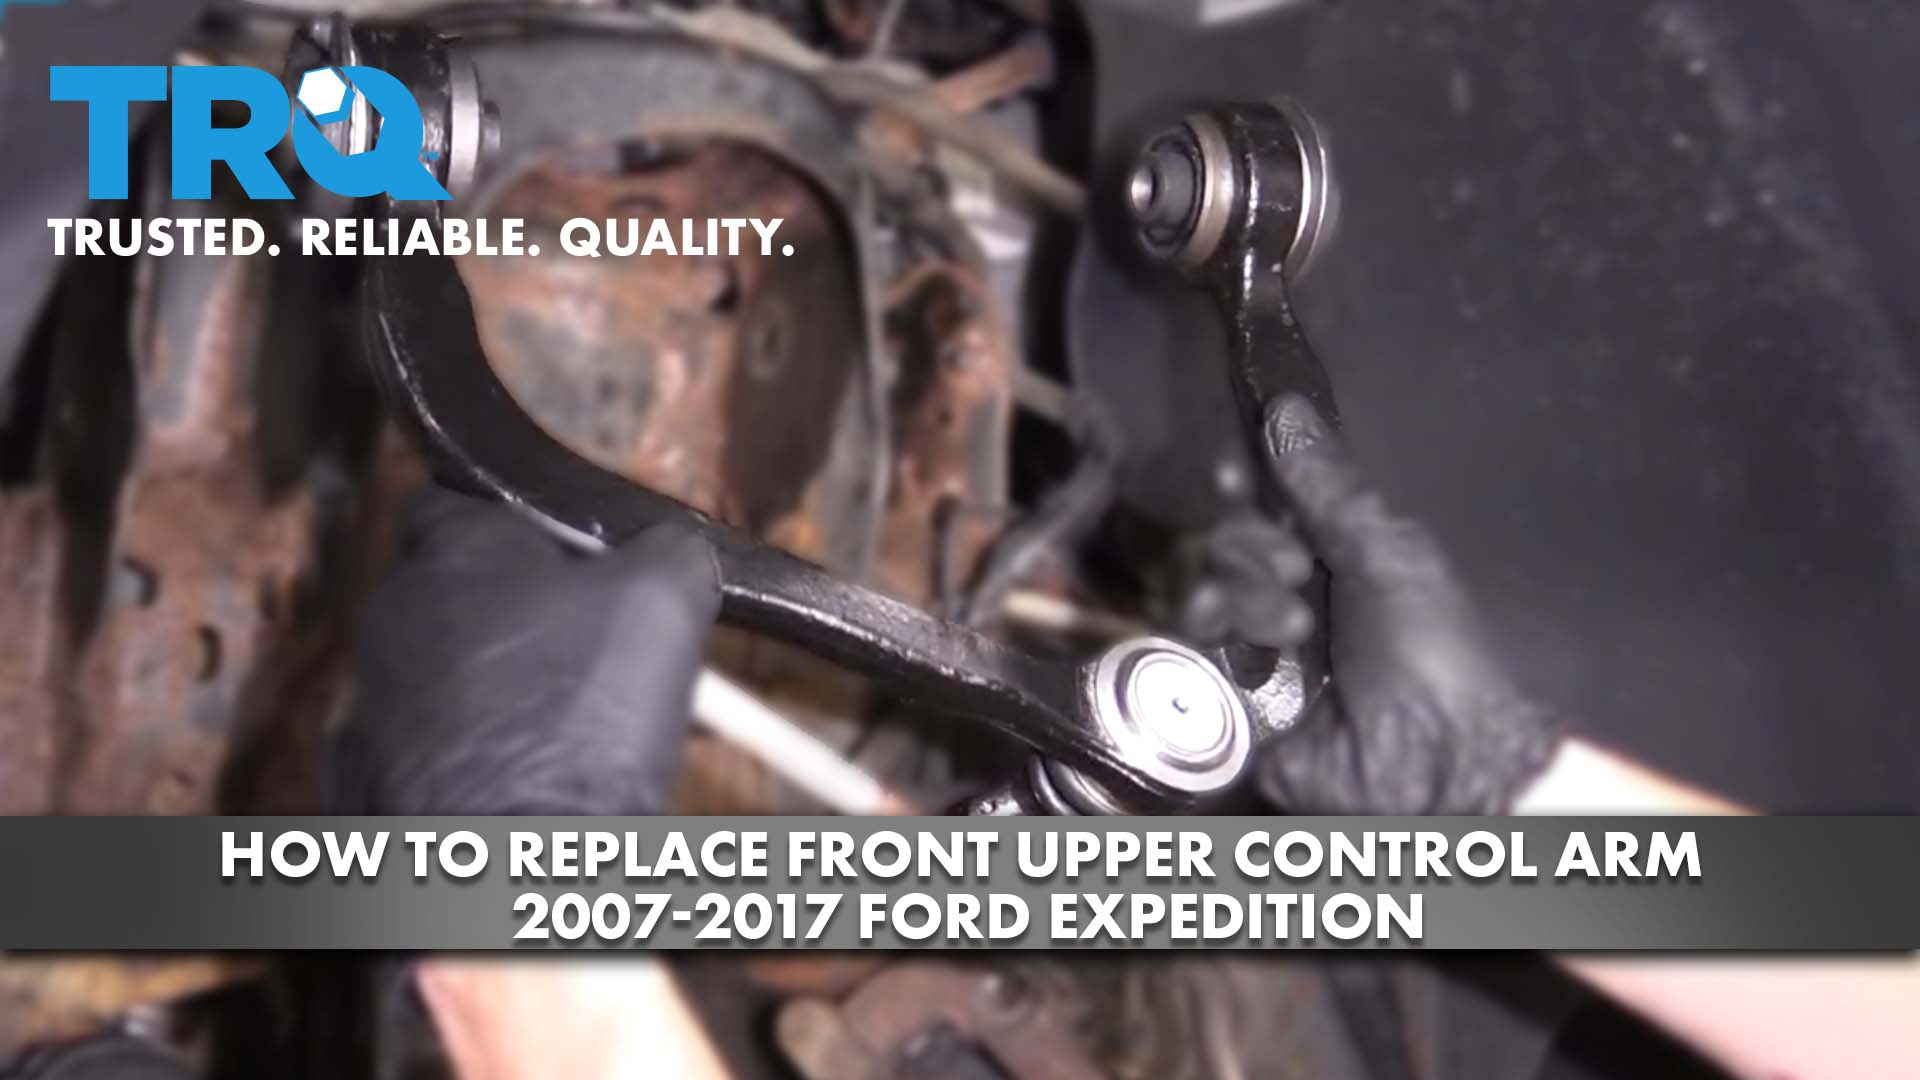 How to Replace Front Upper Control Arm 2007-17 Ford Expedition